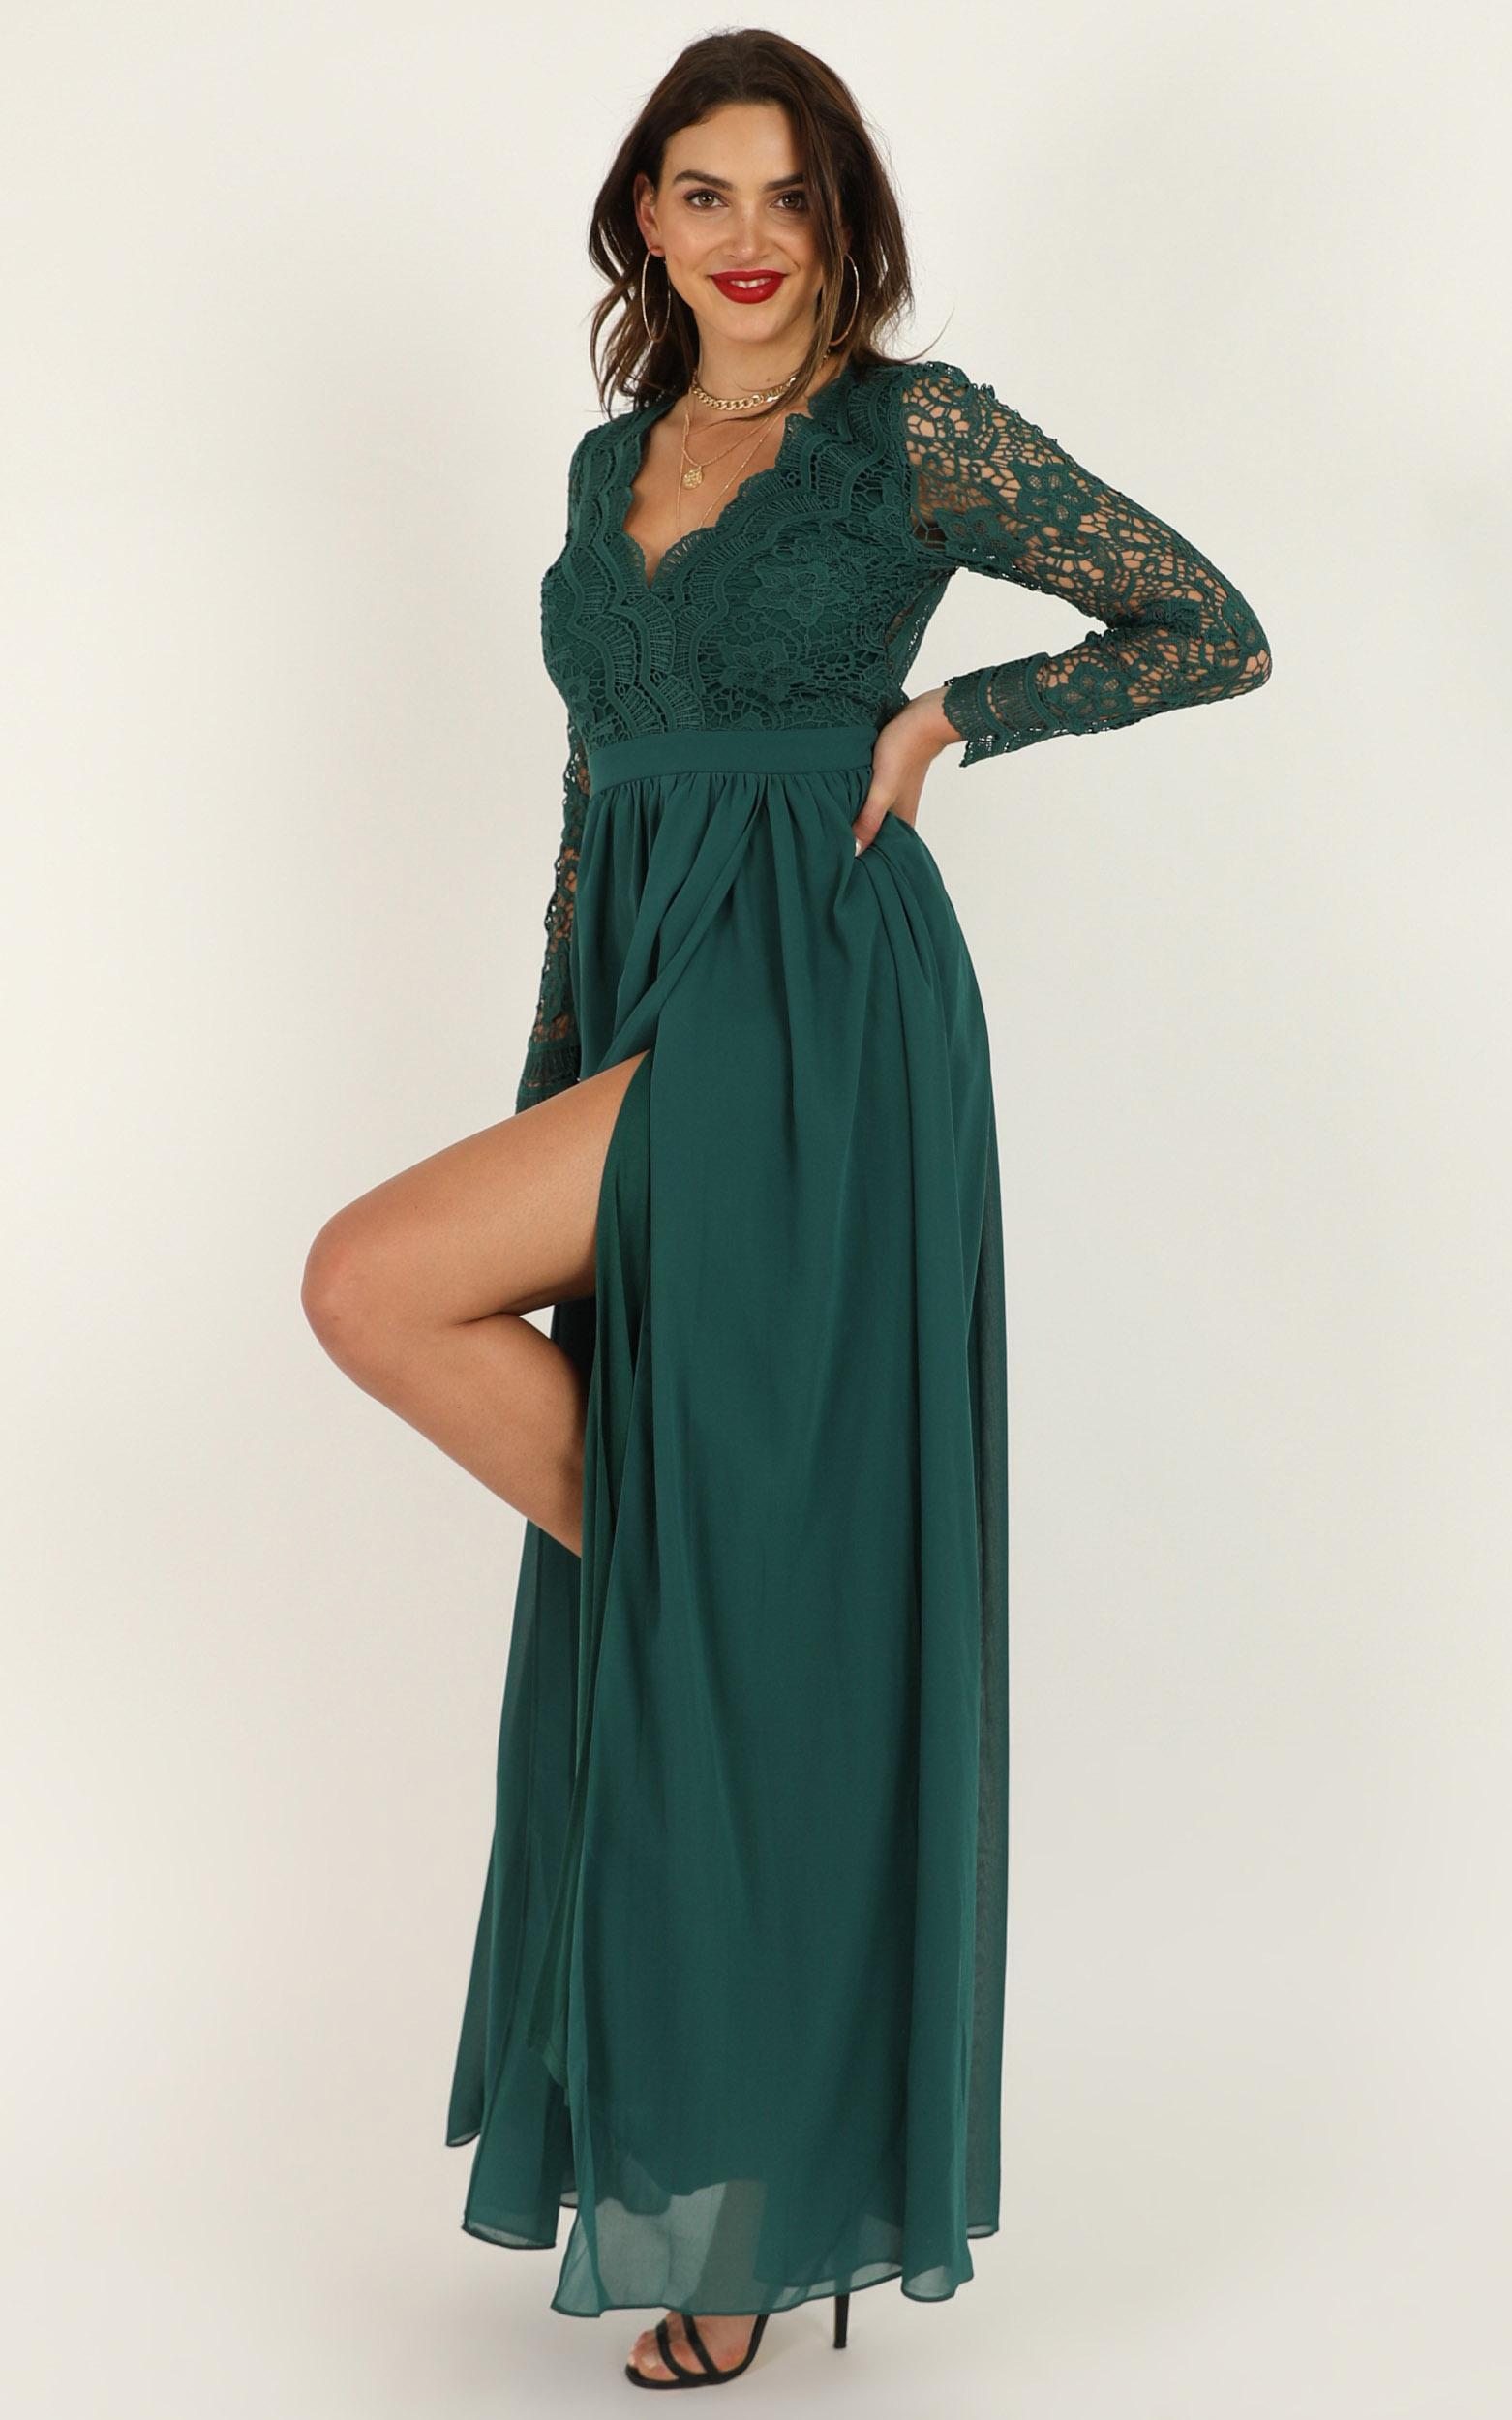 Power Up maxi dress in emerald green lace - 12 (L), Green, hi-res image number null